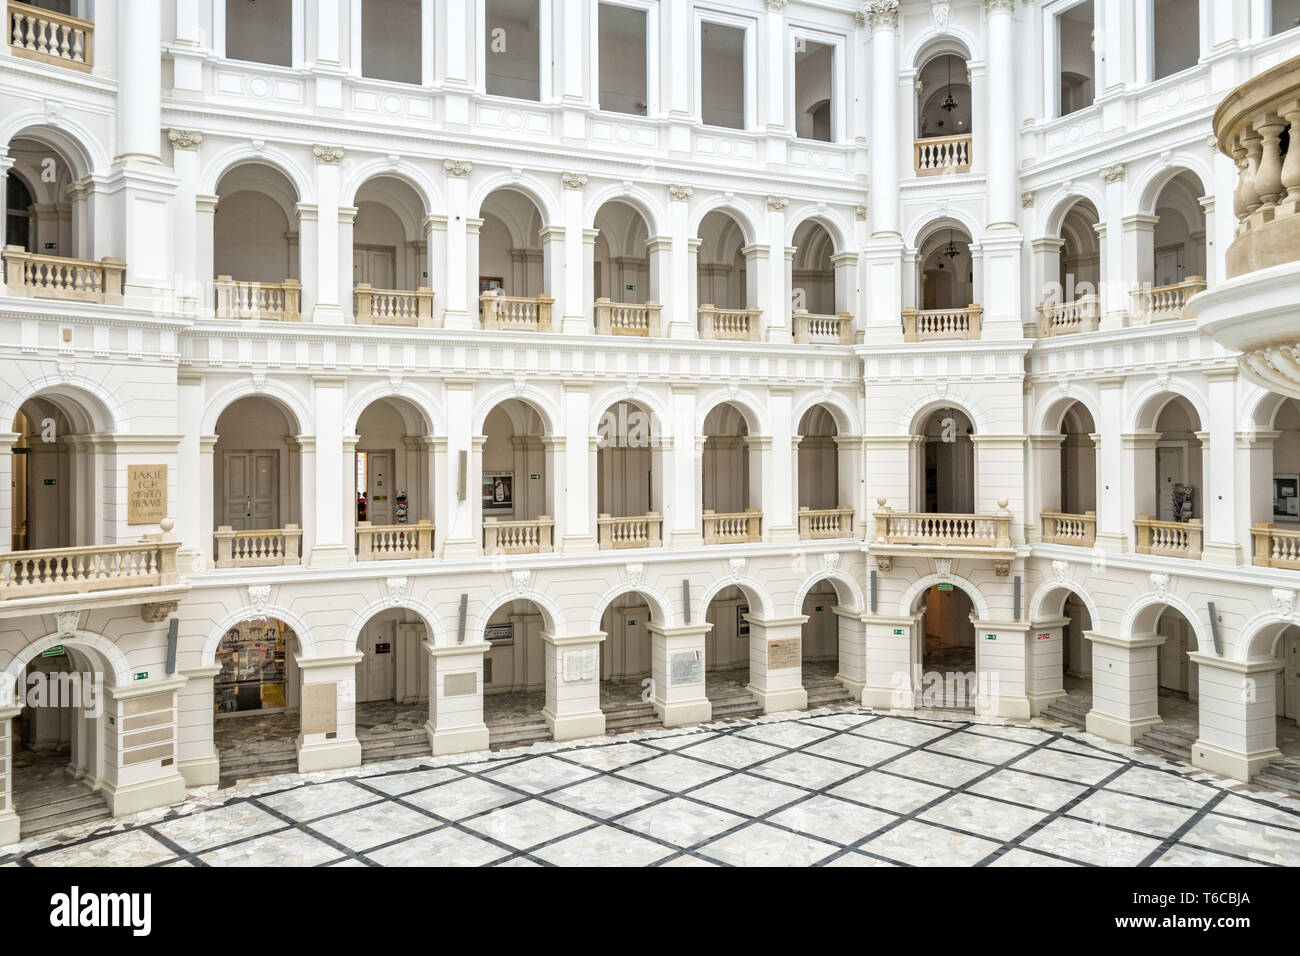 Courtyard of the Warsaw University of Technology in Warsaw, Poland. Stock Photo